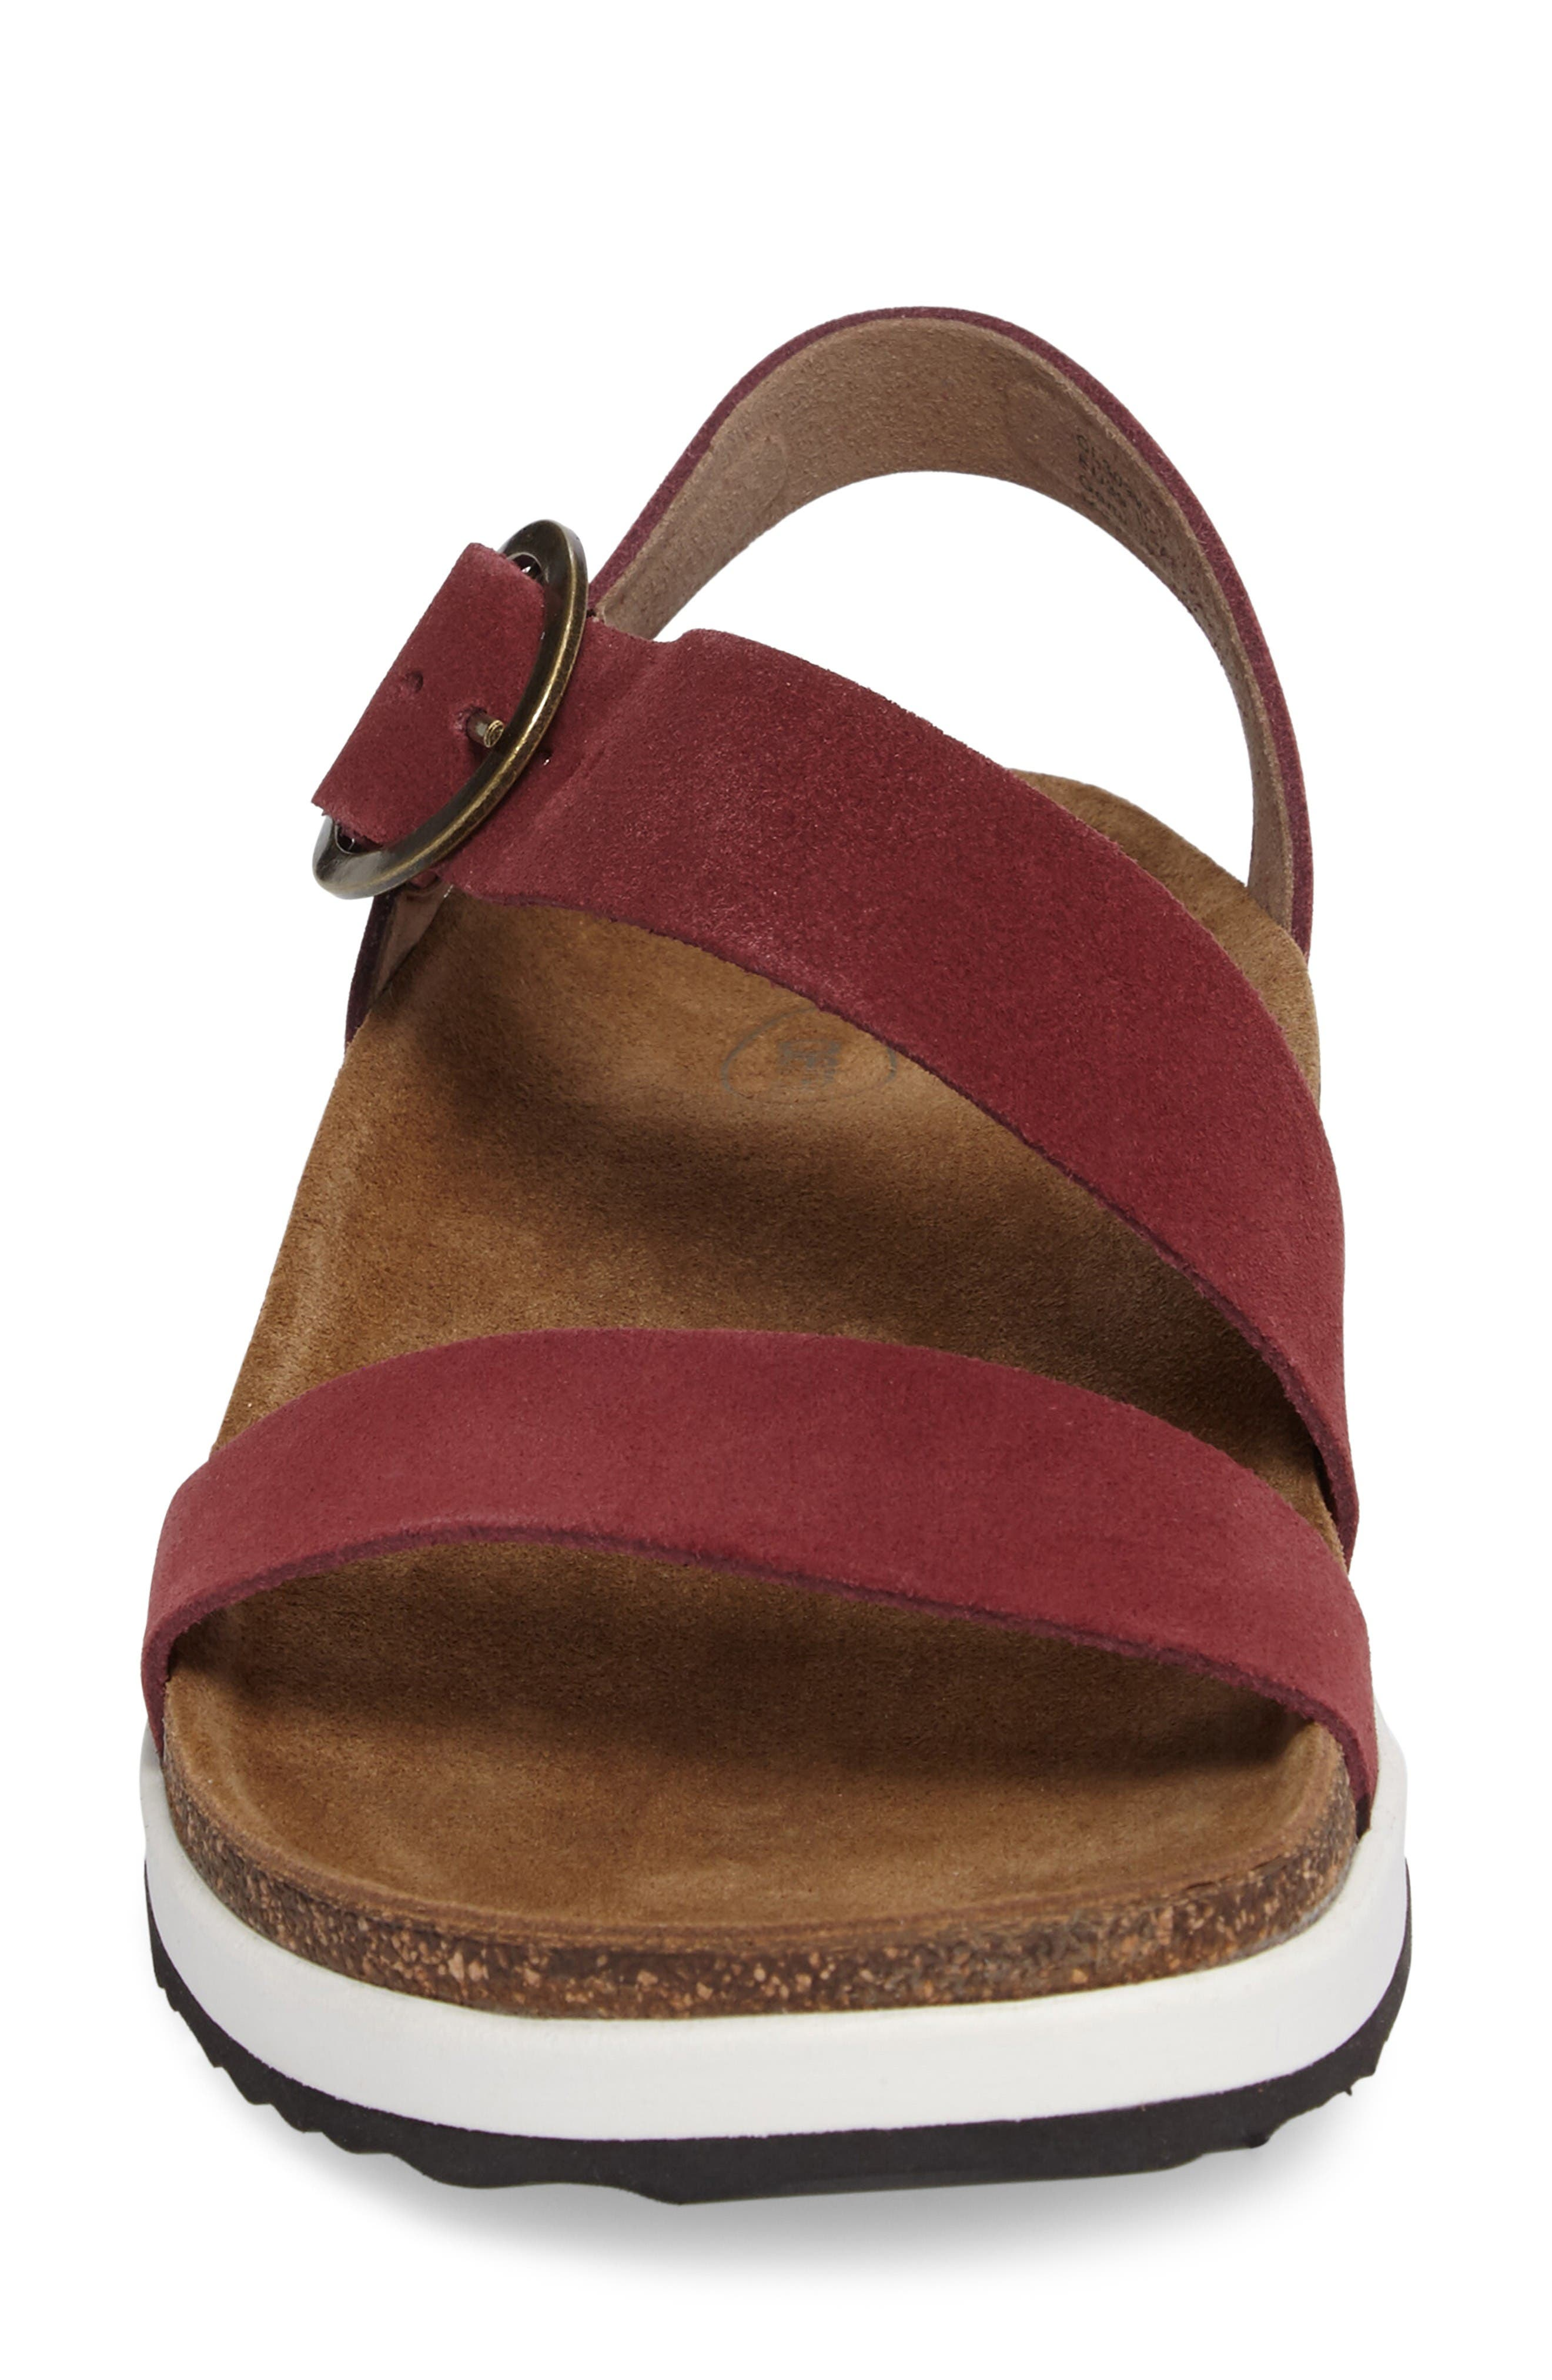 Adrianna Sandal,                             Alternate thumbnail 4, color,                             Maroon Suede